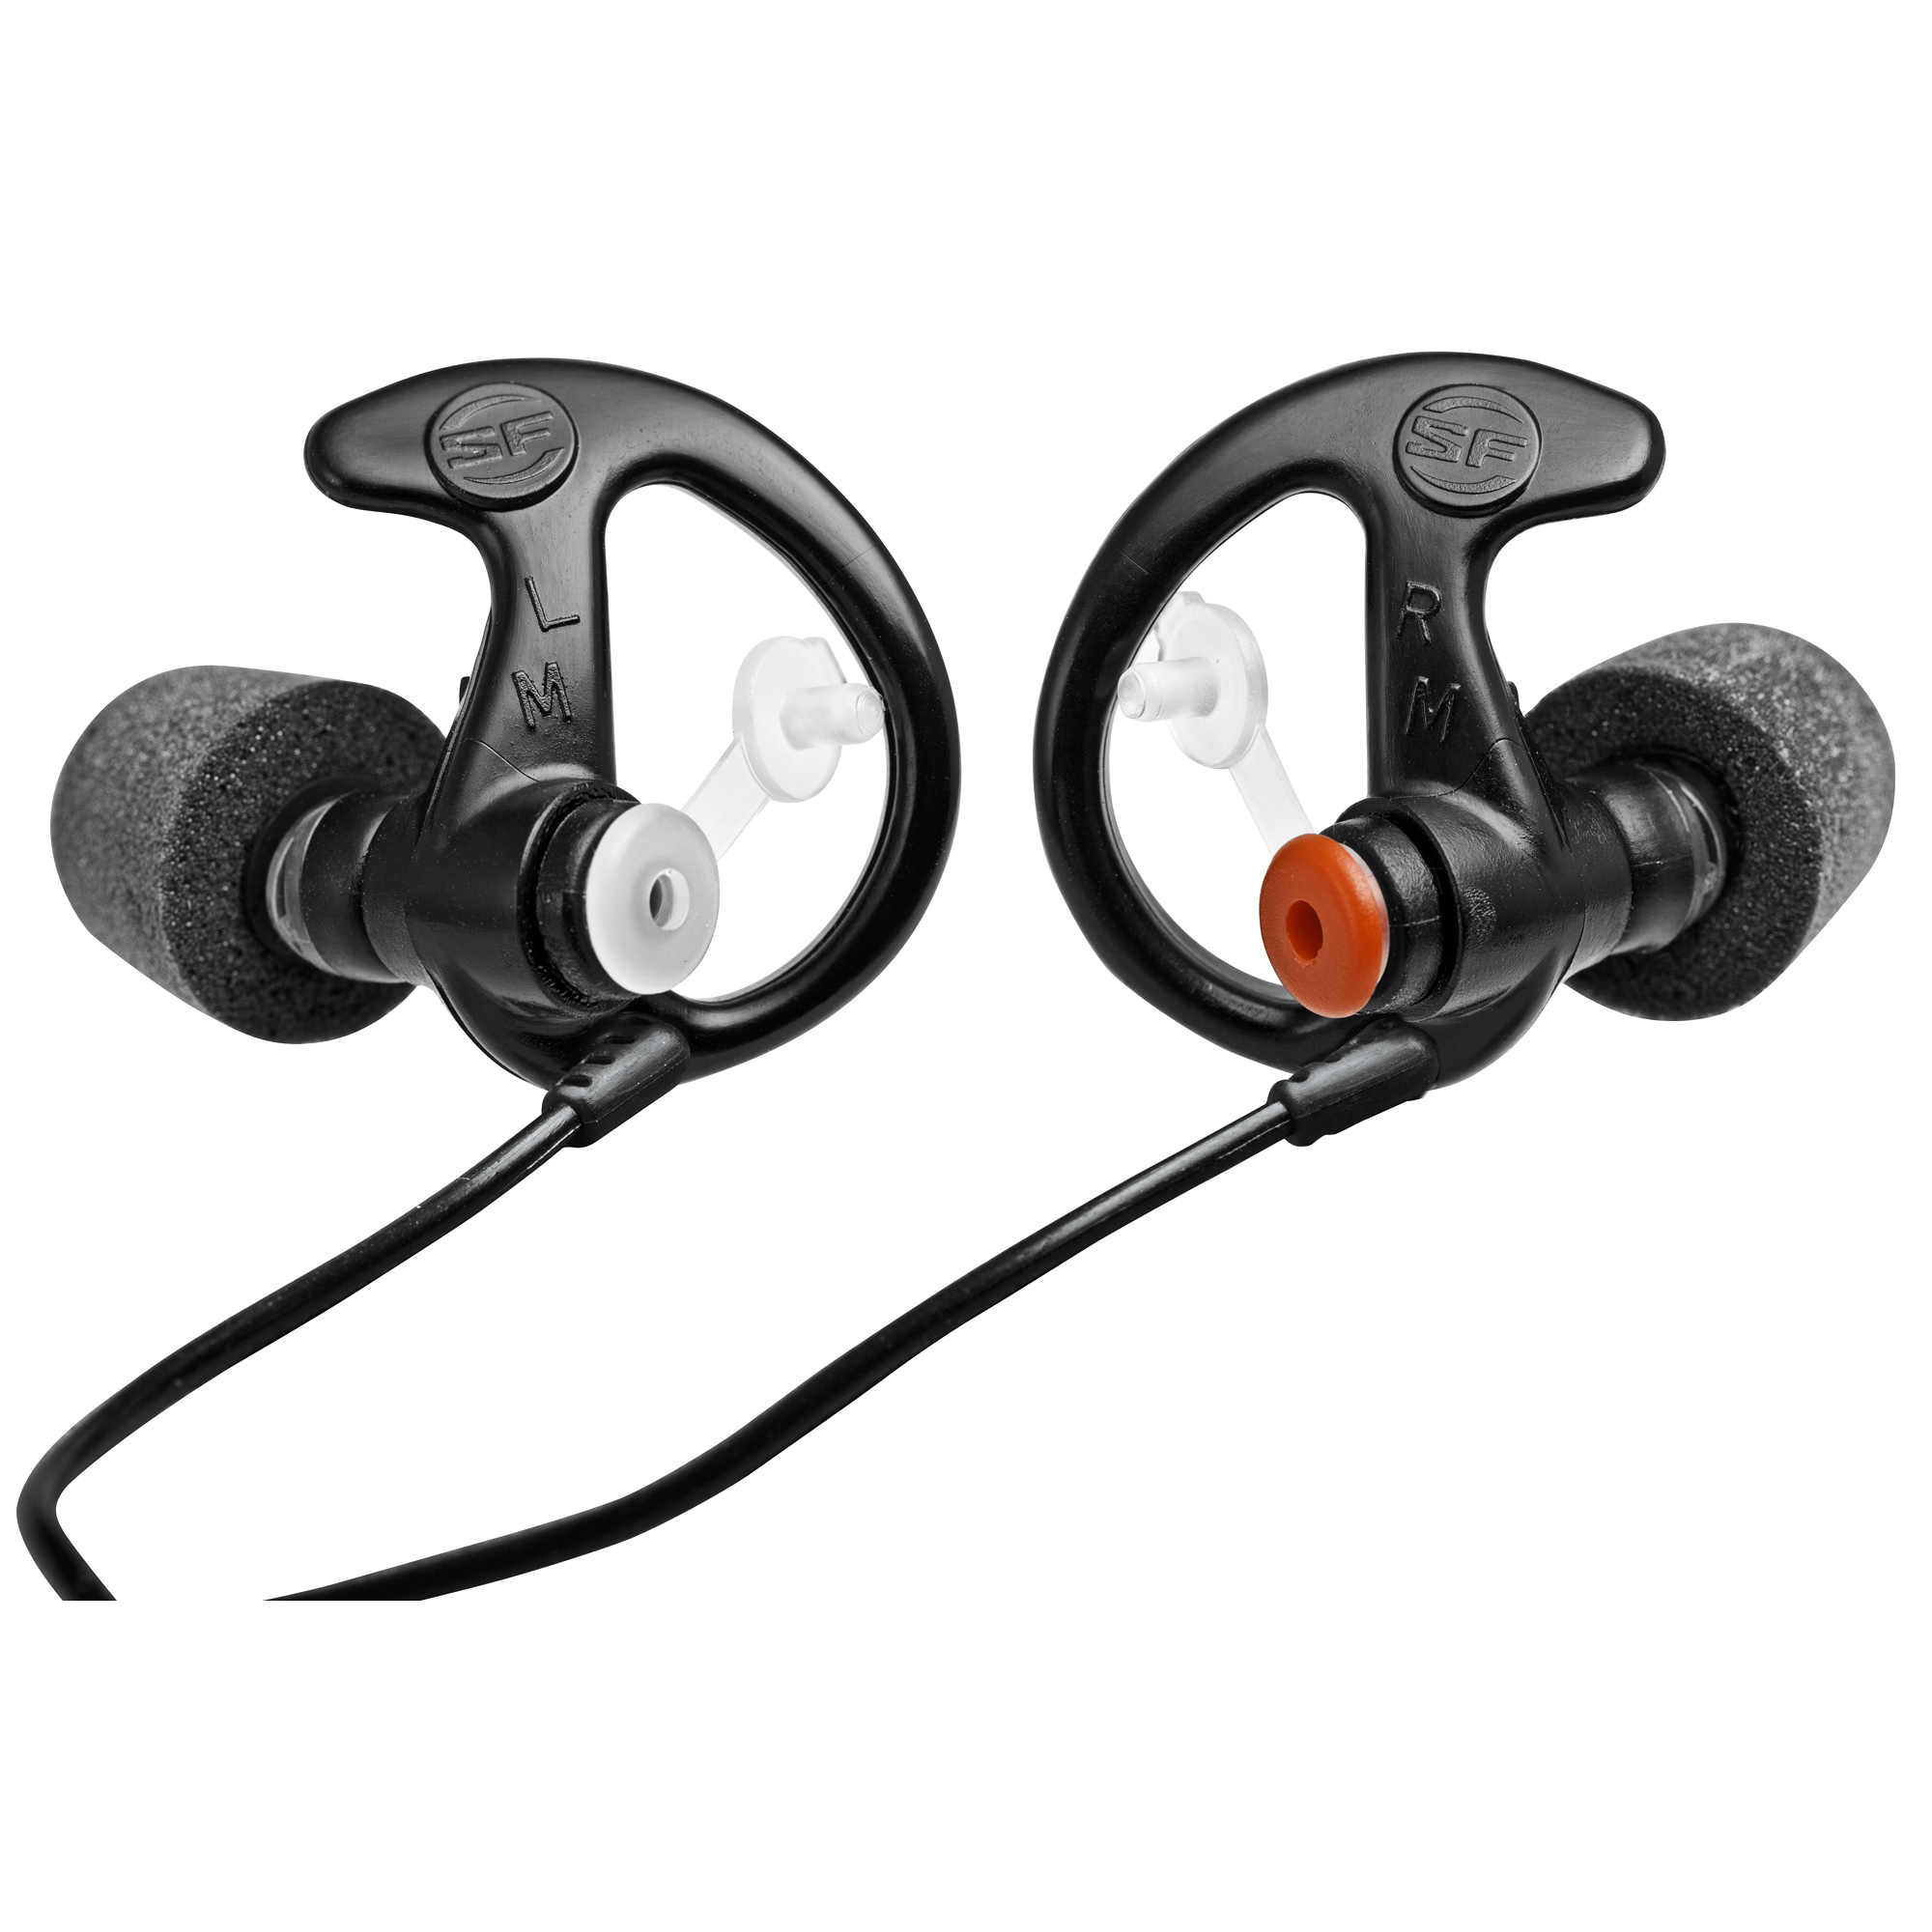 """SureFire earplugs were developed to protect military and law enforcement personnel from harmful sounds. In addition to offering protection"""" these filtered earplugs allow normal conversations to pass through. SureFire earplugs feature patented EarLock retention rings that provide a secure fit and all-day comfort."""